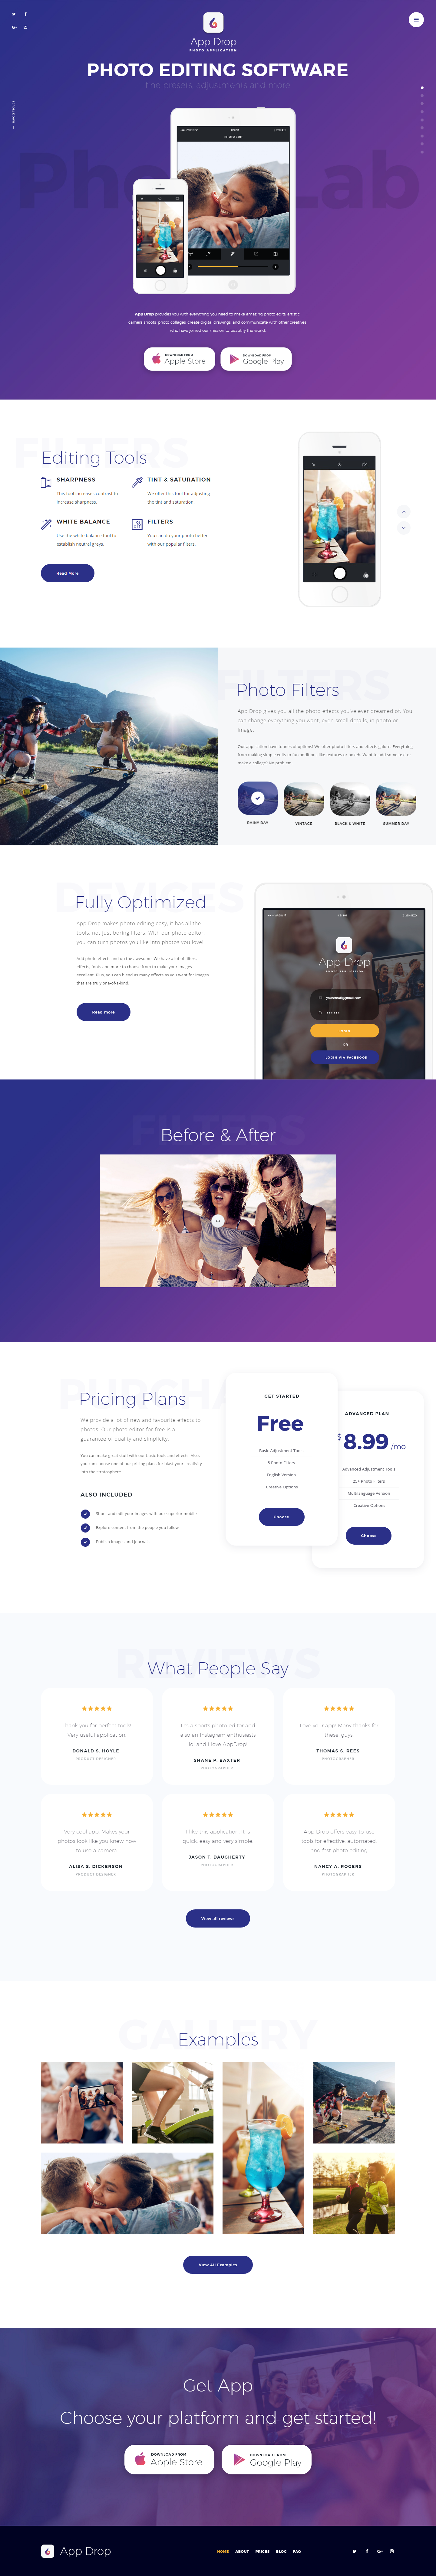 Stylish And Powerfull Wordpress Theme With A Design Created For Online Photo Editor Photo Editing Software Or Photo Editing Application